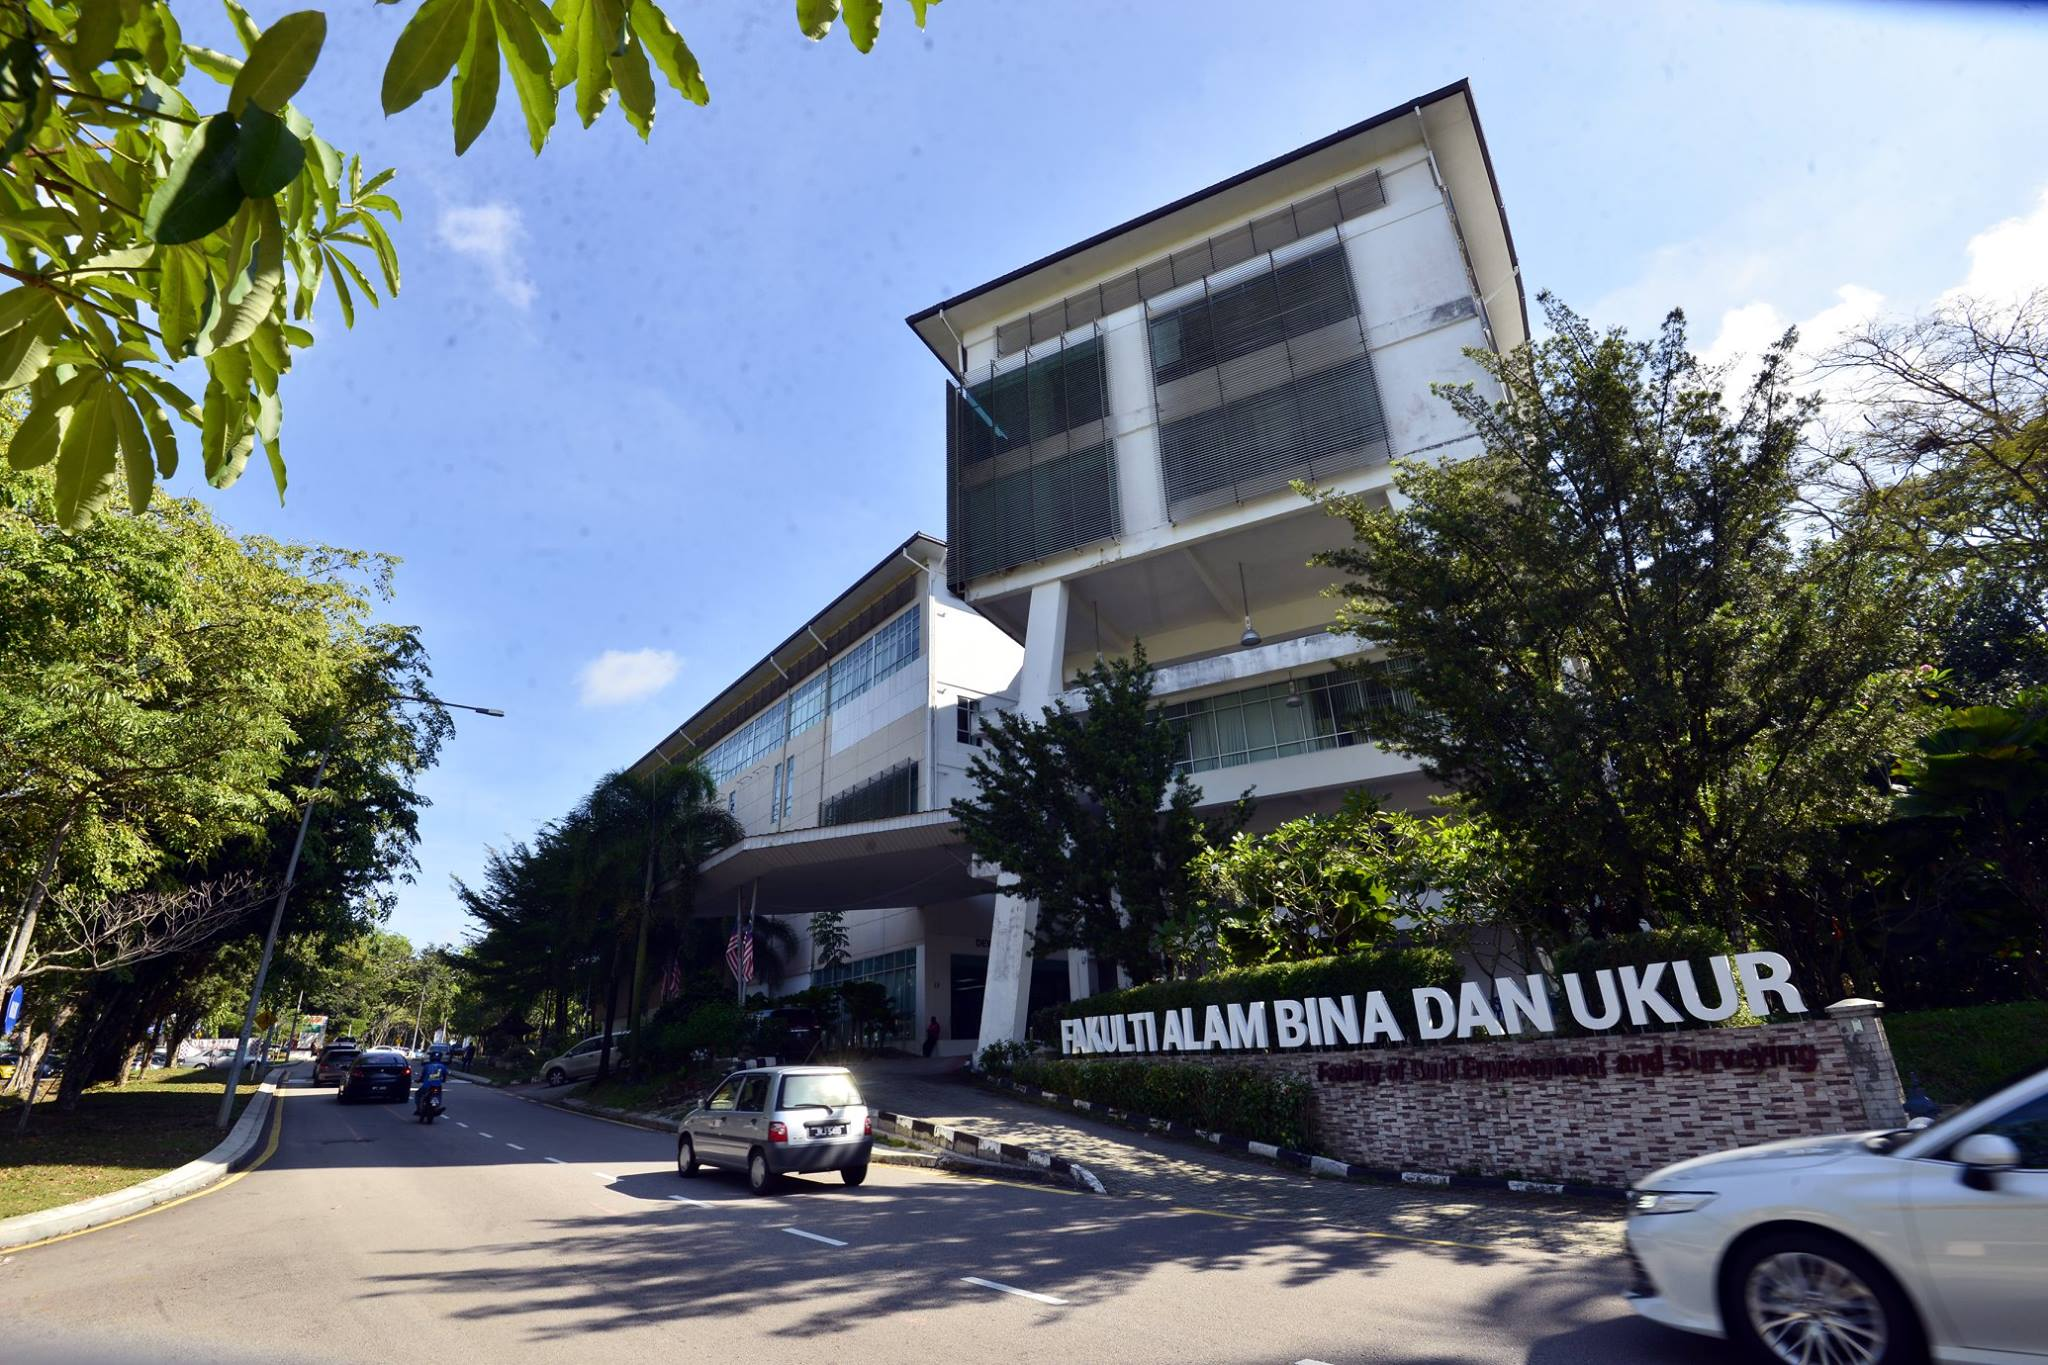 Gambar Bangunan 3d Faculty Of Built Environment And Surveying Fabu